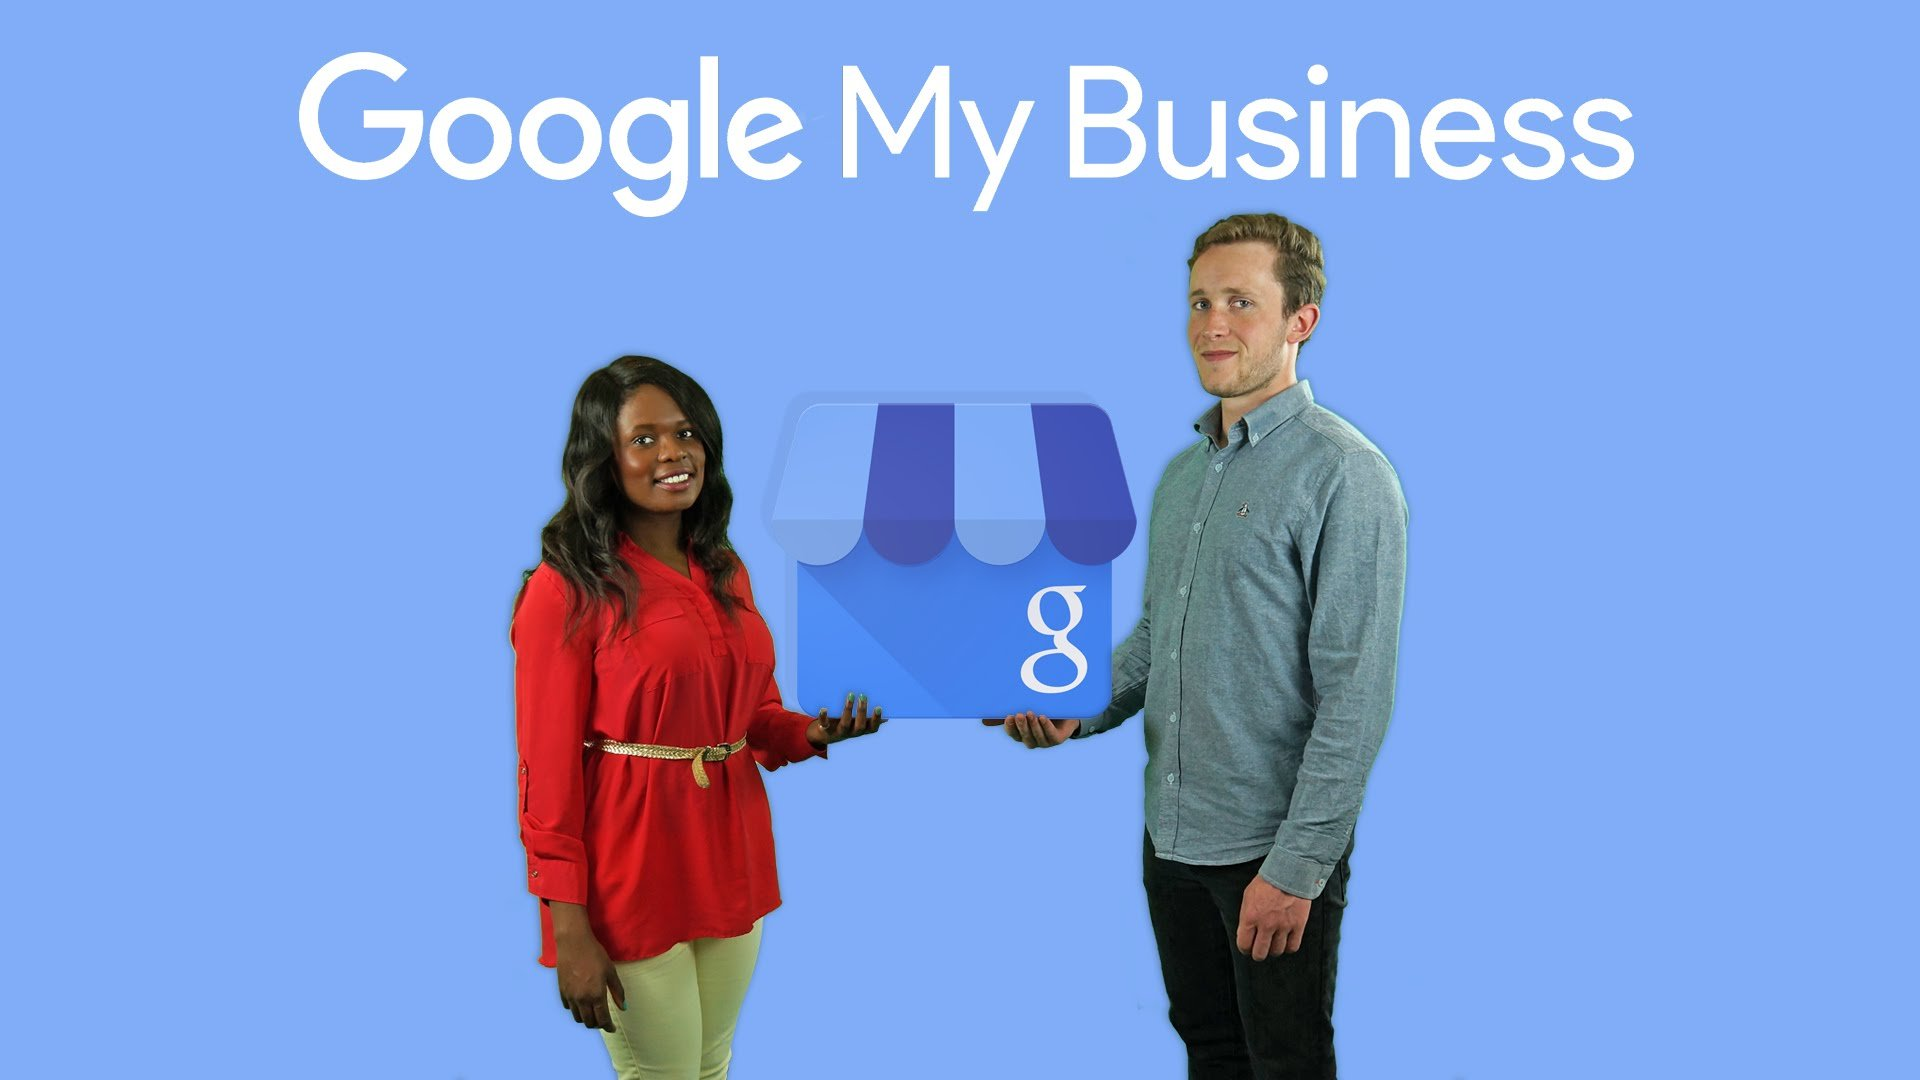 I can't find my business on Google